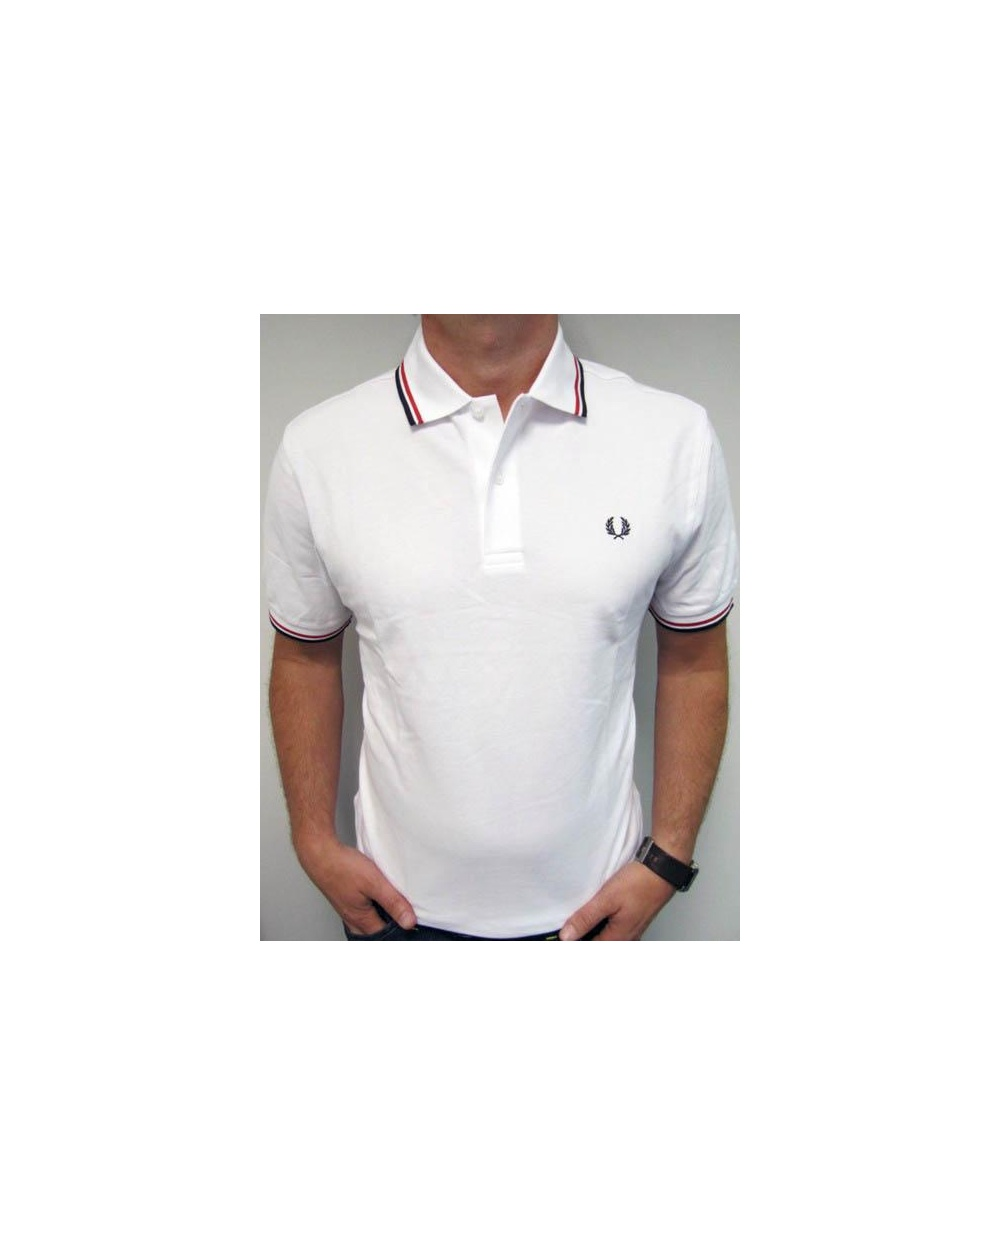 e3413fd5a Fred Perry Twin Tipped Polo Shirt White Red Navy - fred perry mens black  polo shirt